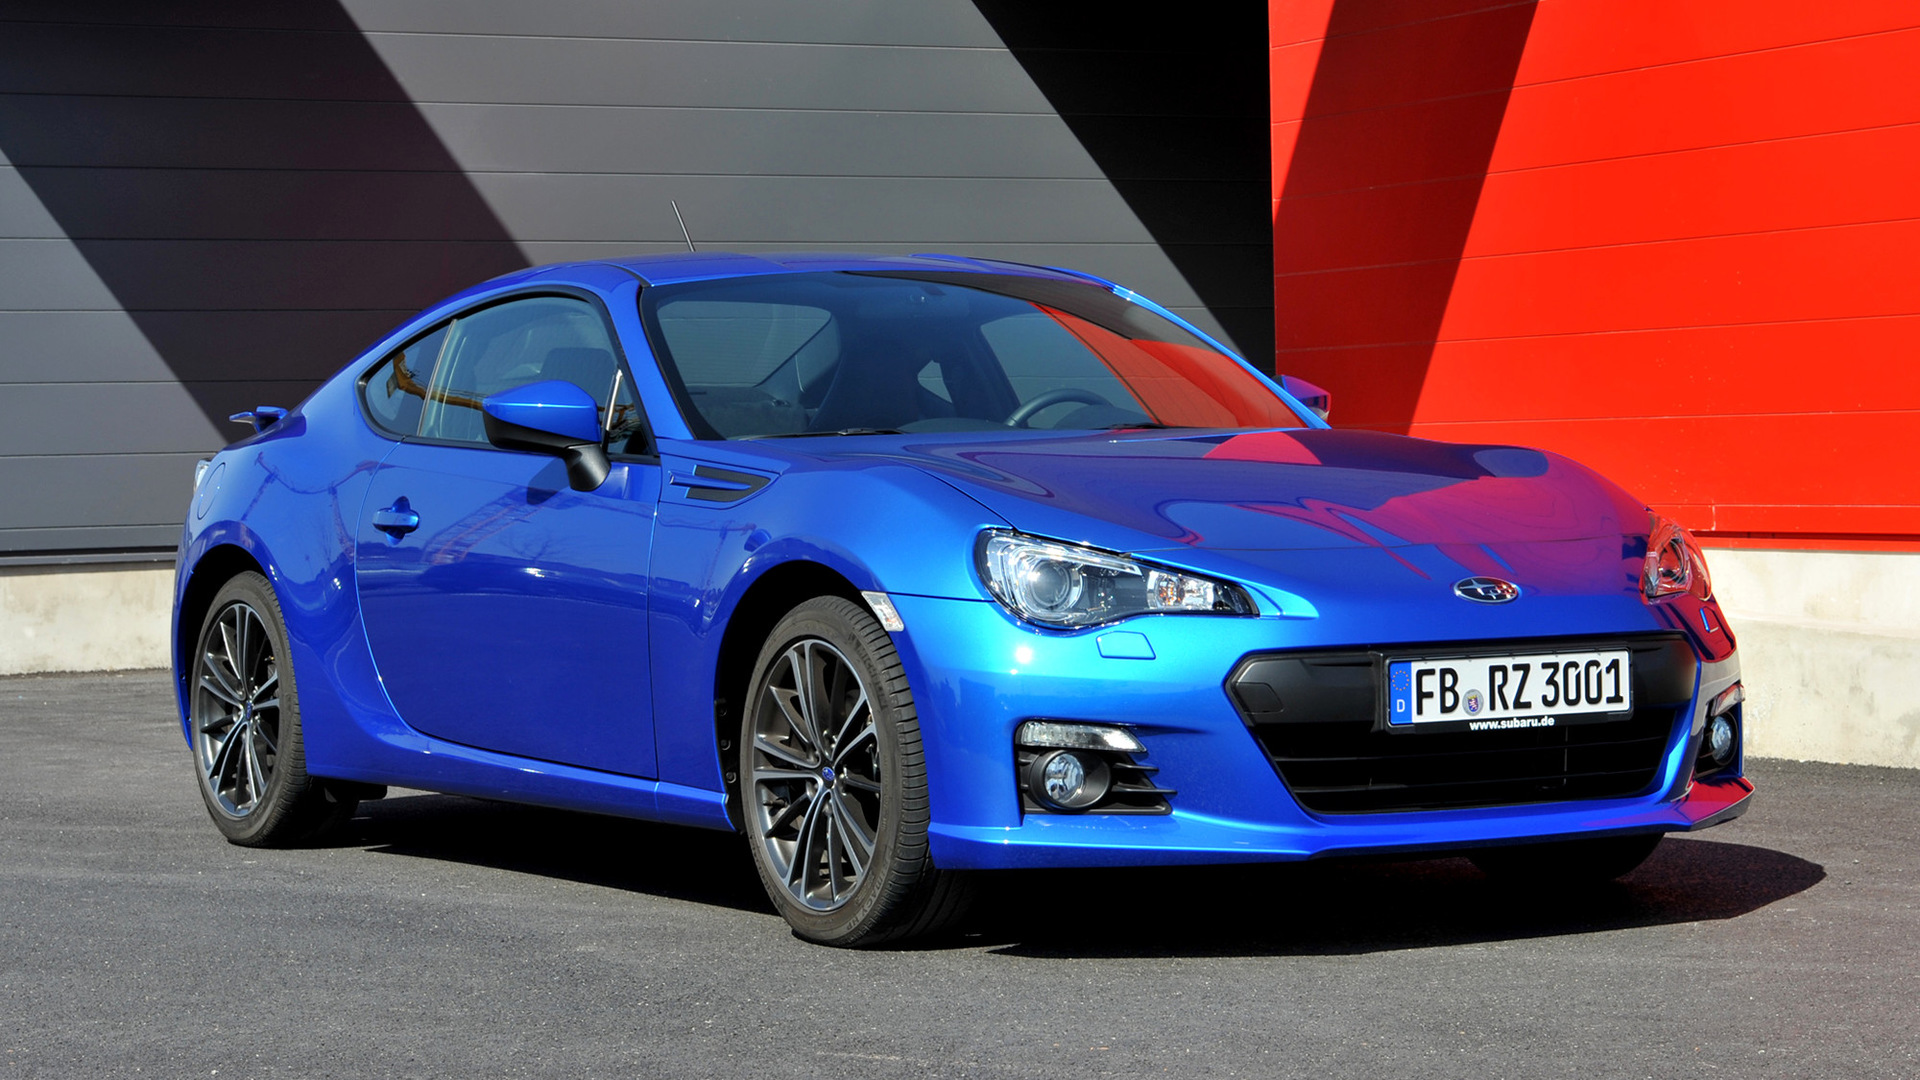 Hd 16 - - Toyota Gt 86 Fast And Furious , HD Wallpaper & Backgrounds